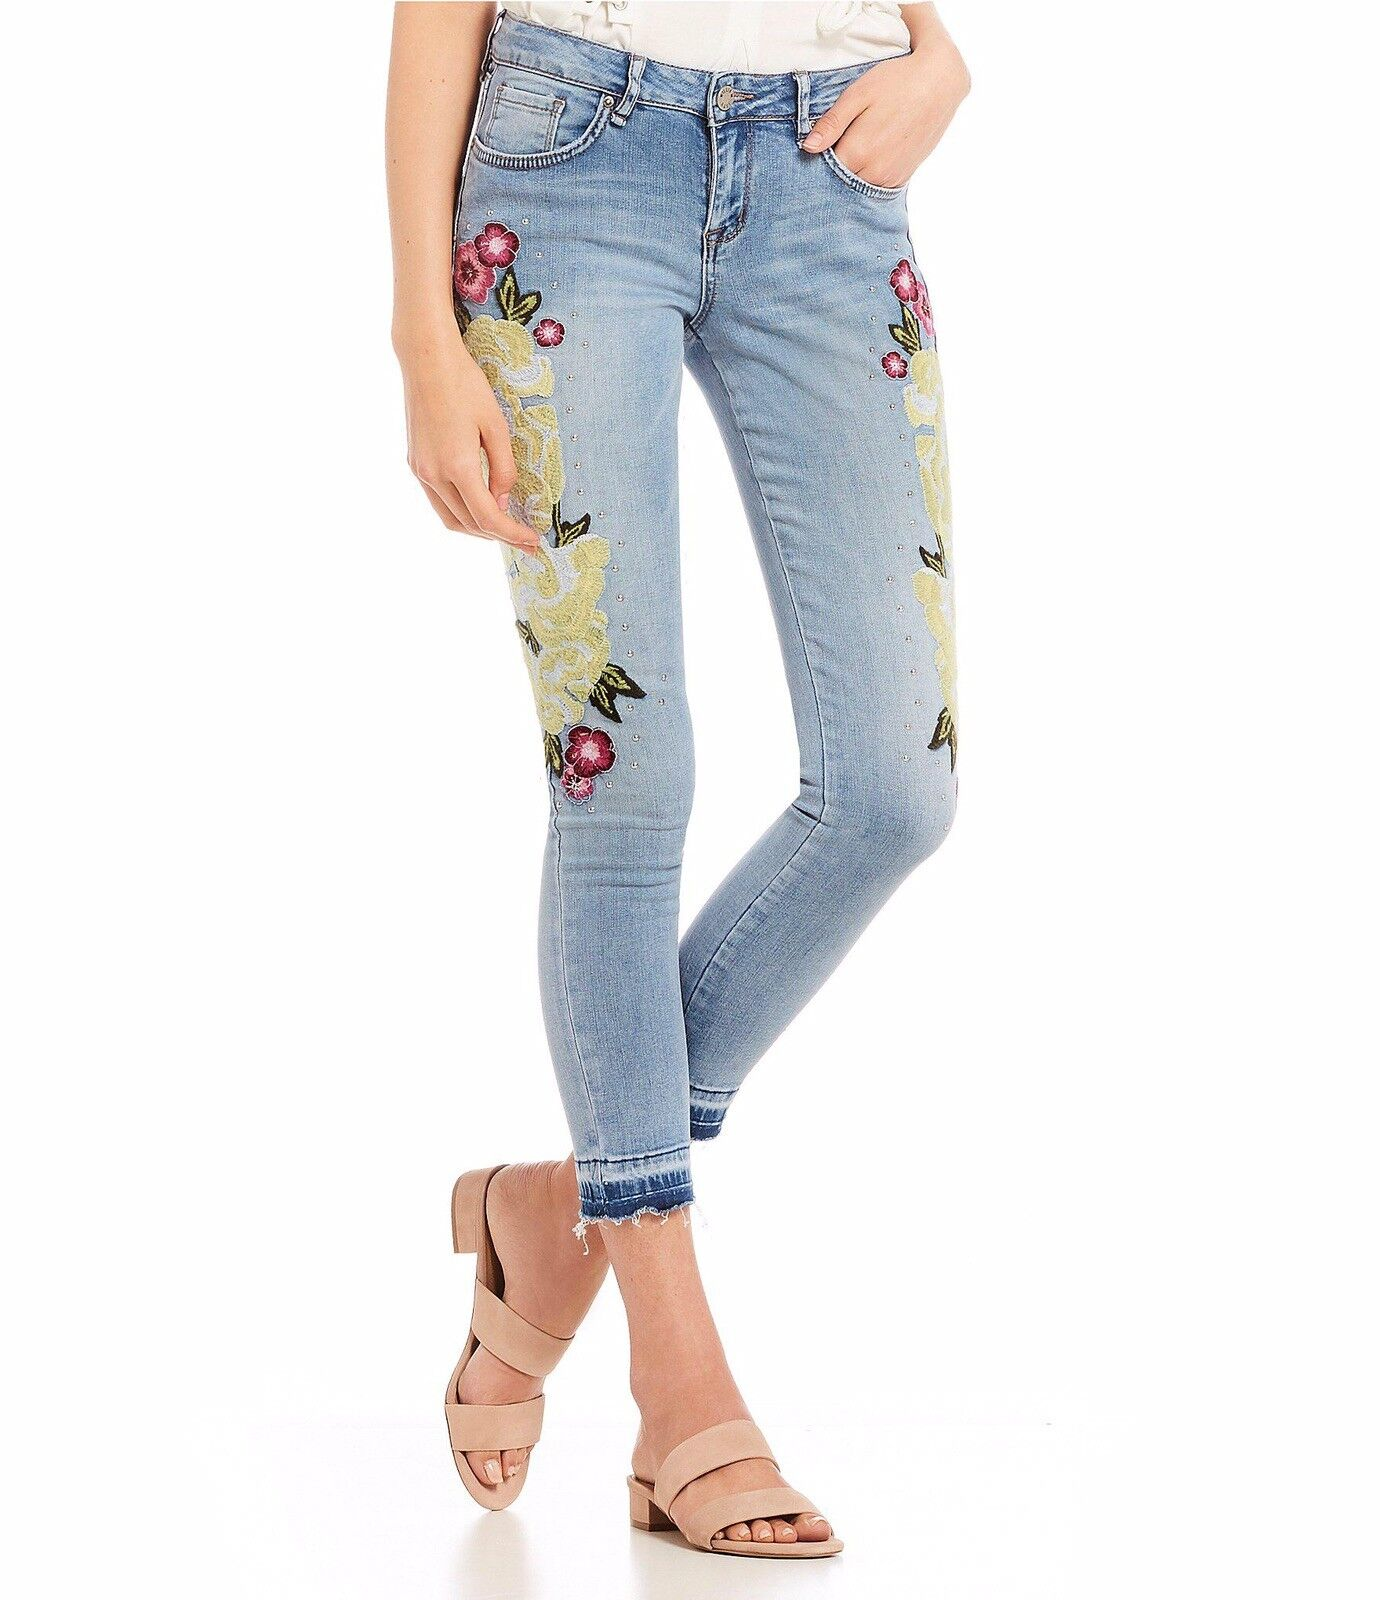 New WILLIAM RAST Sz 29 Floral Embroidered Studded Skinny Ankle Jeans